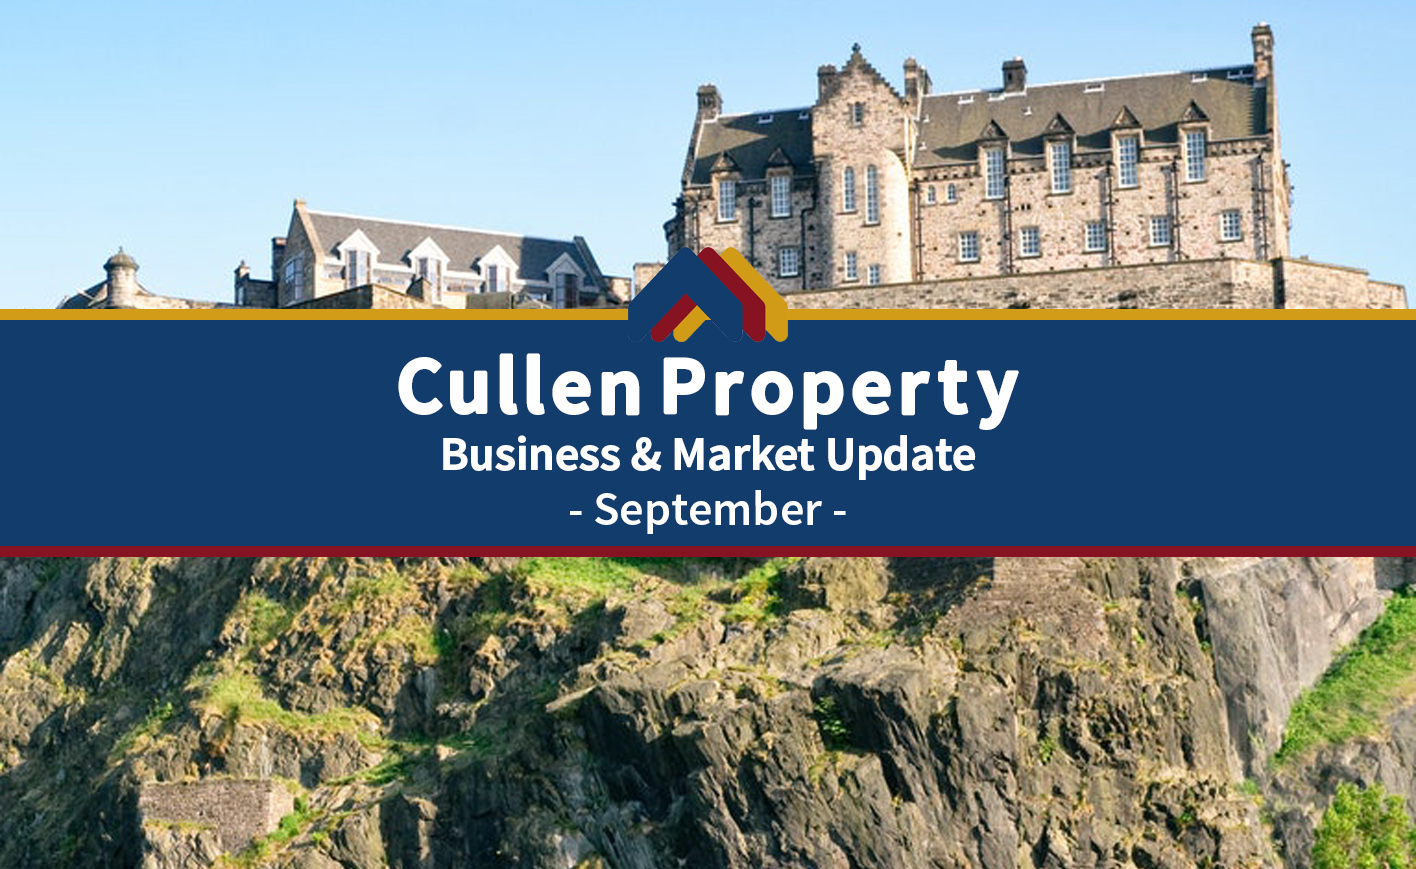 Cullen Property Business & Market Update